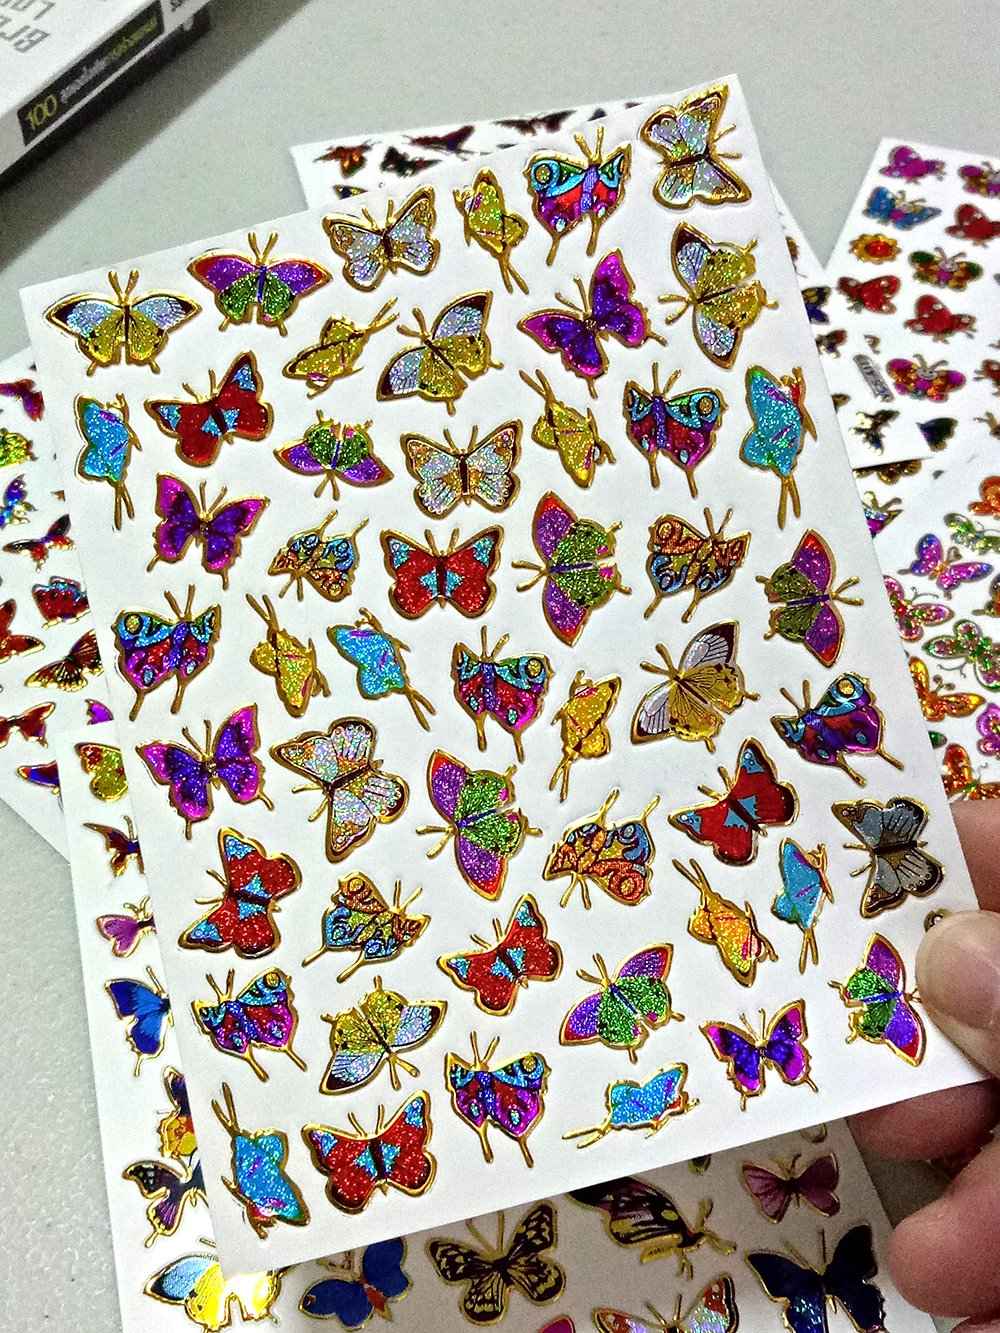 Album Card Birthday Party Diary Butterfly003-6 Different Sheet Butterfly Glitter Gold Metallic Foil Reflective Craft Self-adhesive Sticker Decorative Scrapbook for Kid